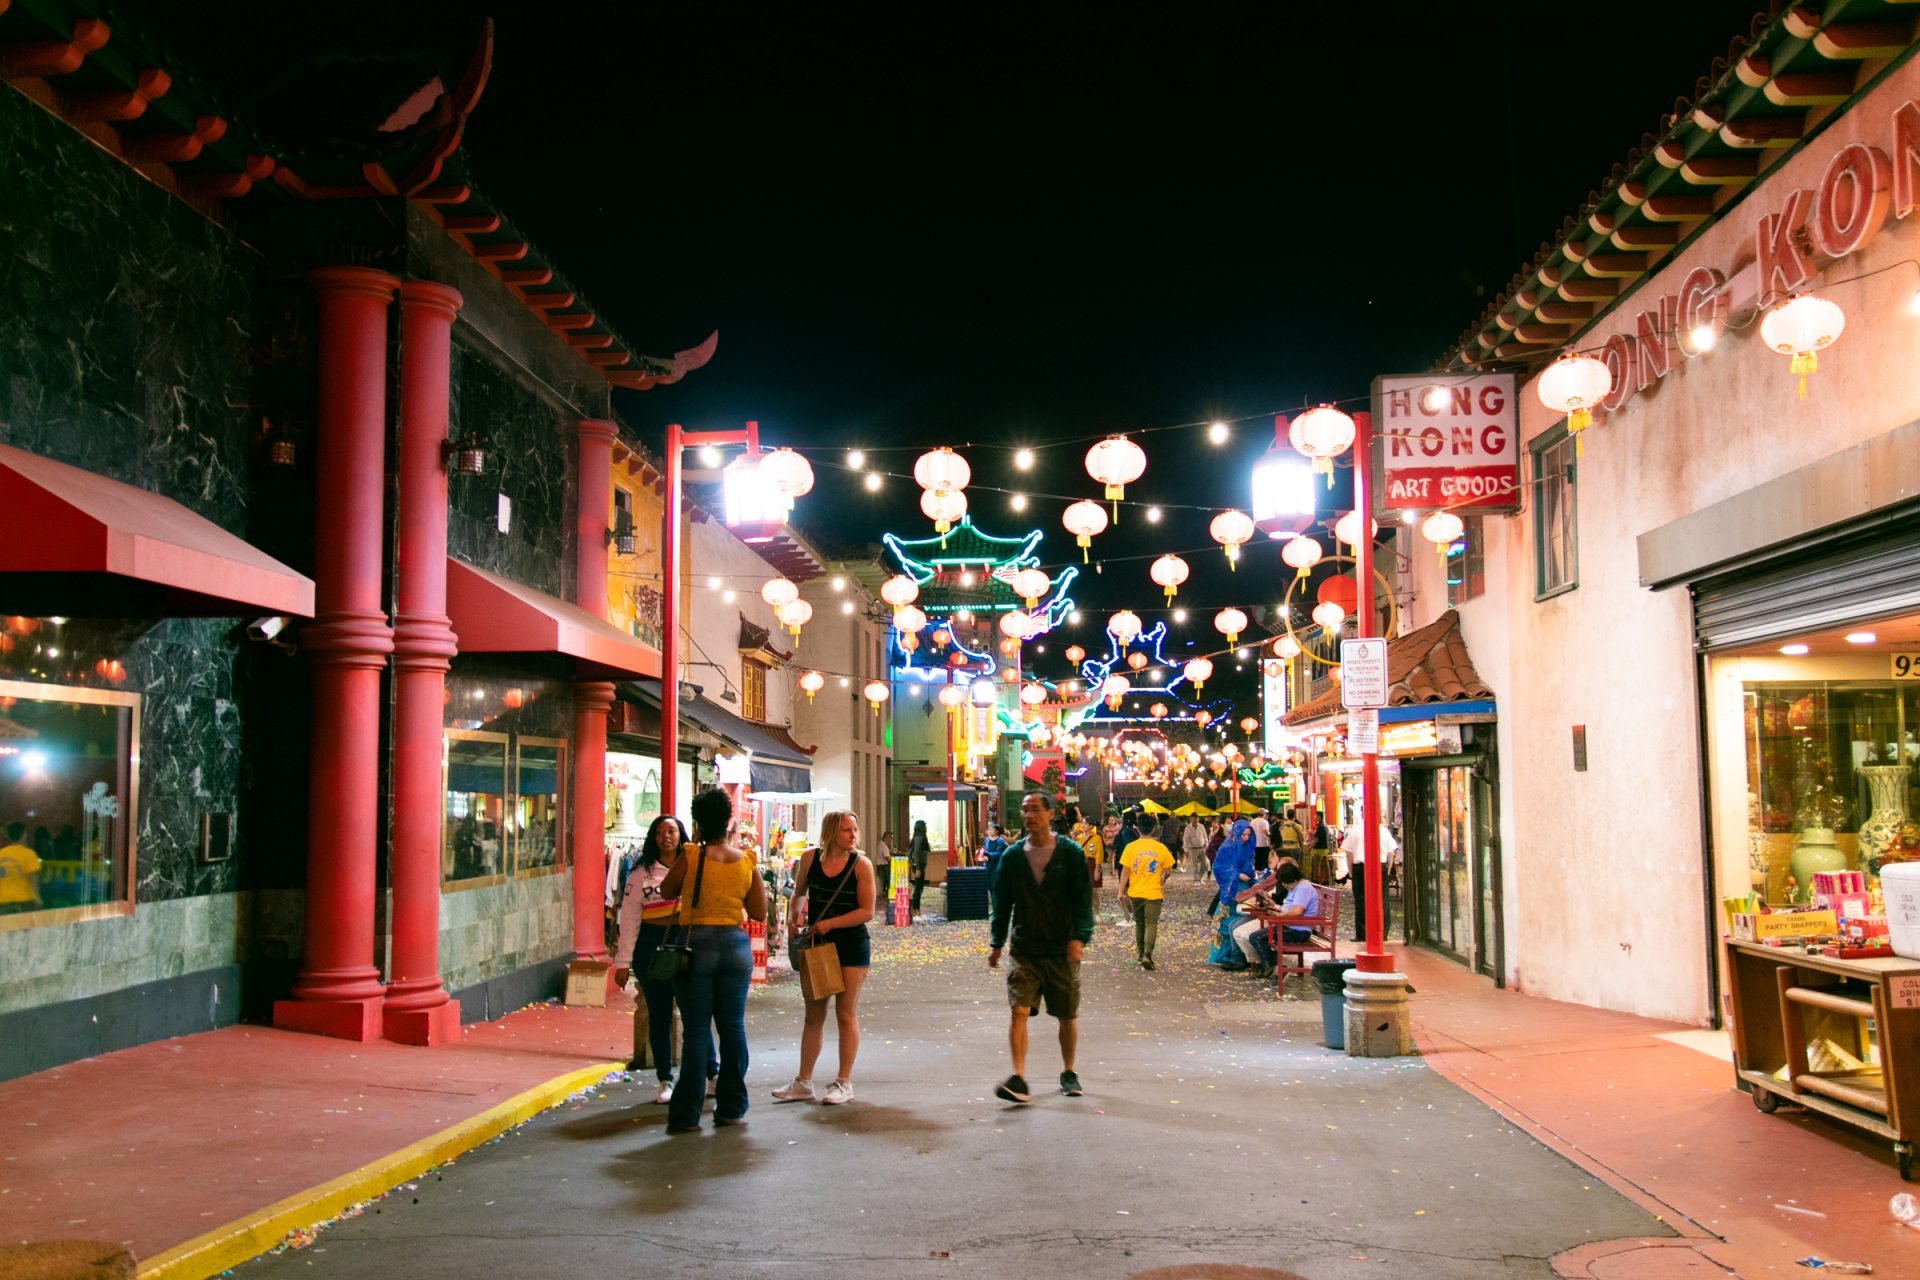 People In Brightly Lit Street In Chinatown At Night